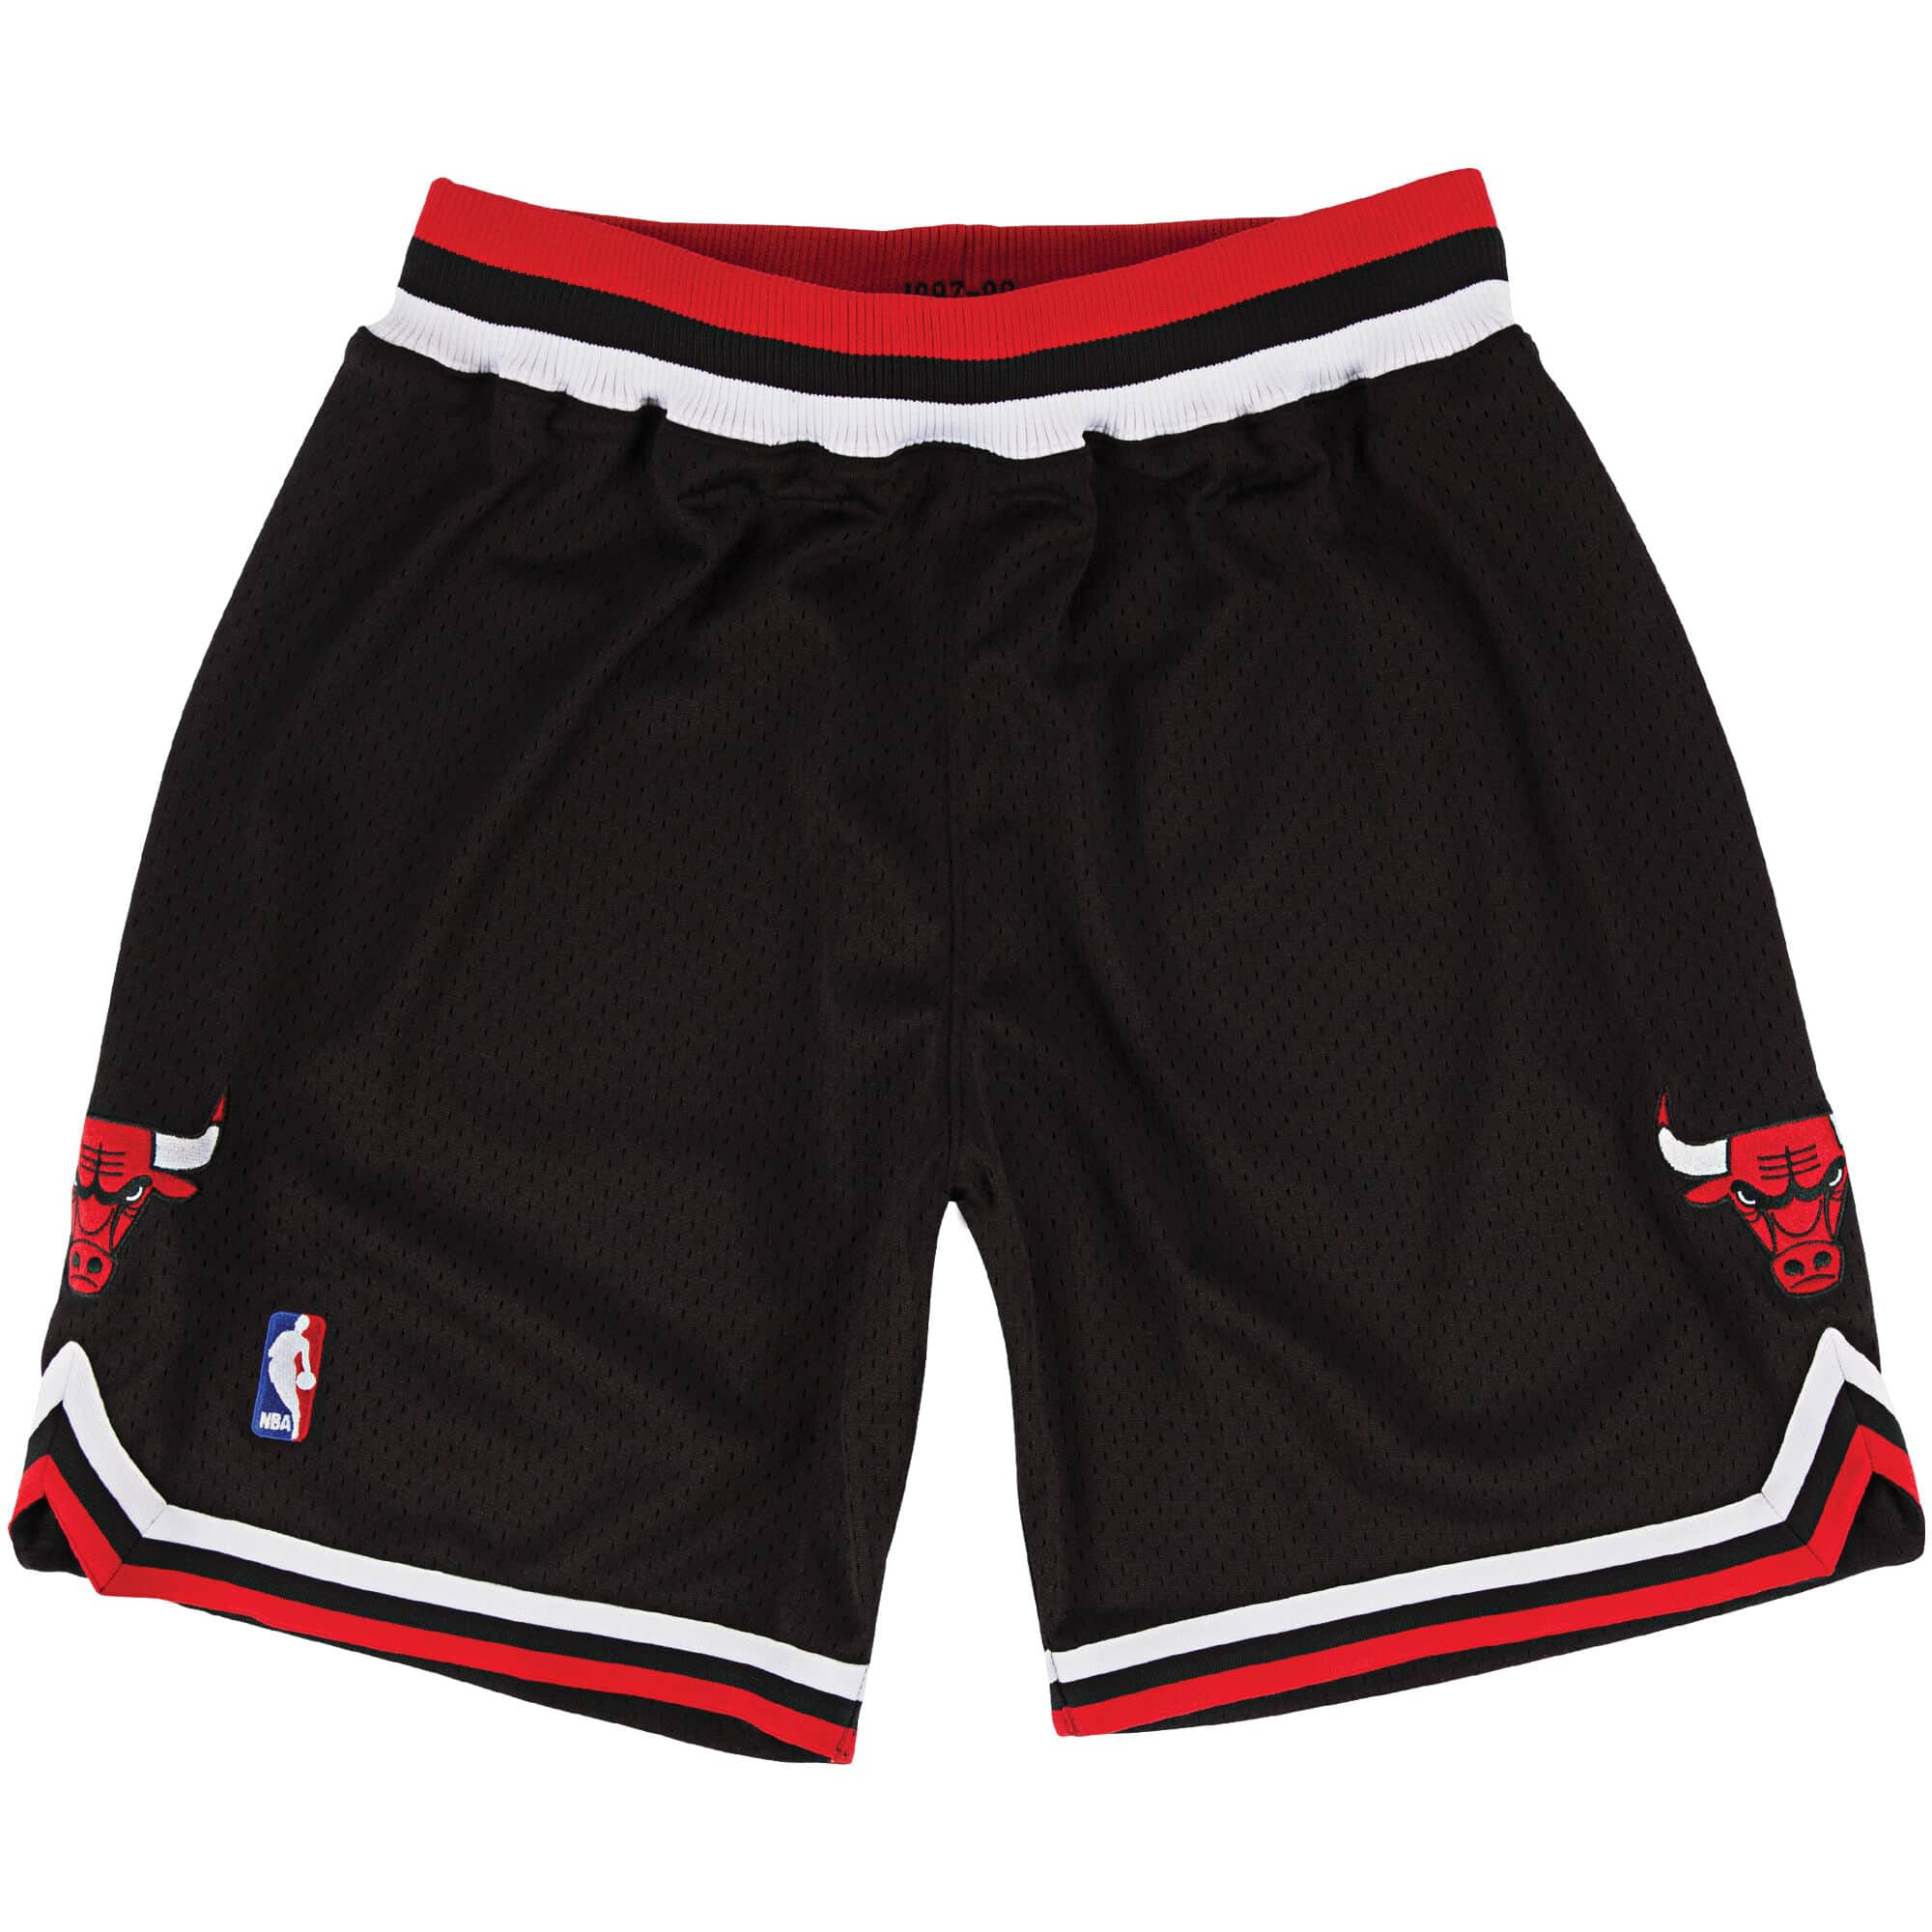 Mitchell & Ness Authentic Shorts Chicago Bulls Alternate 1997-98 xld